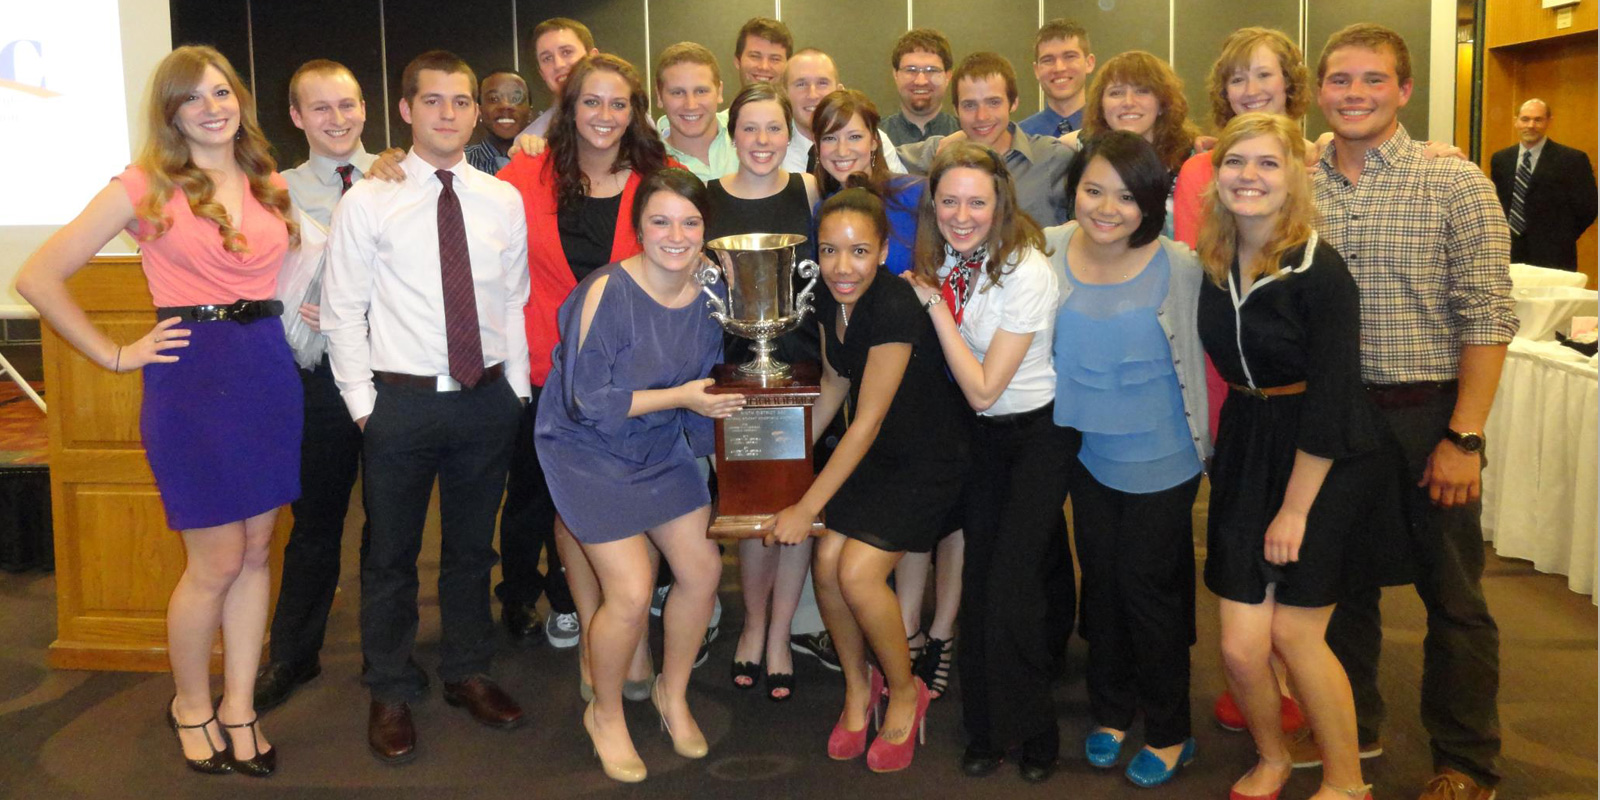 NSAC students with their trophy